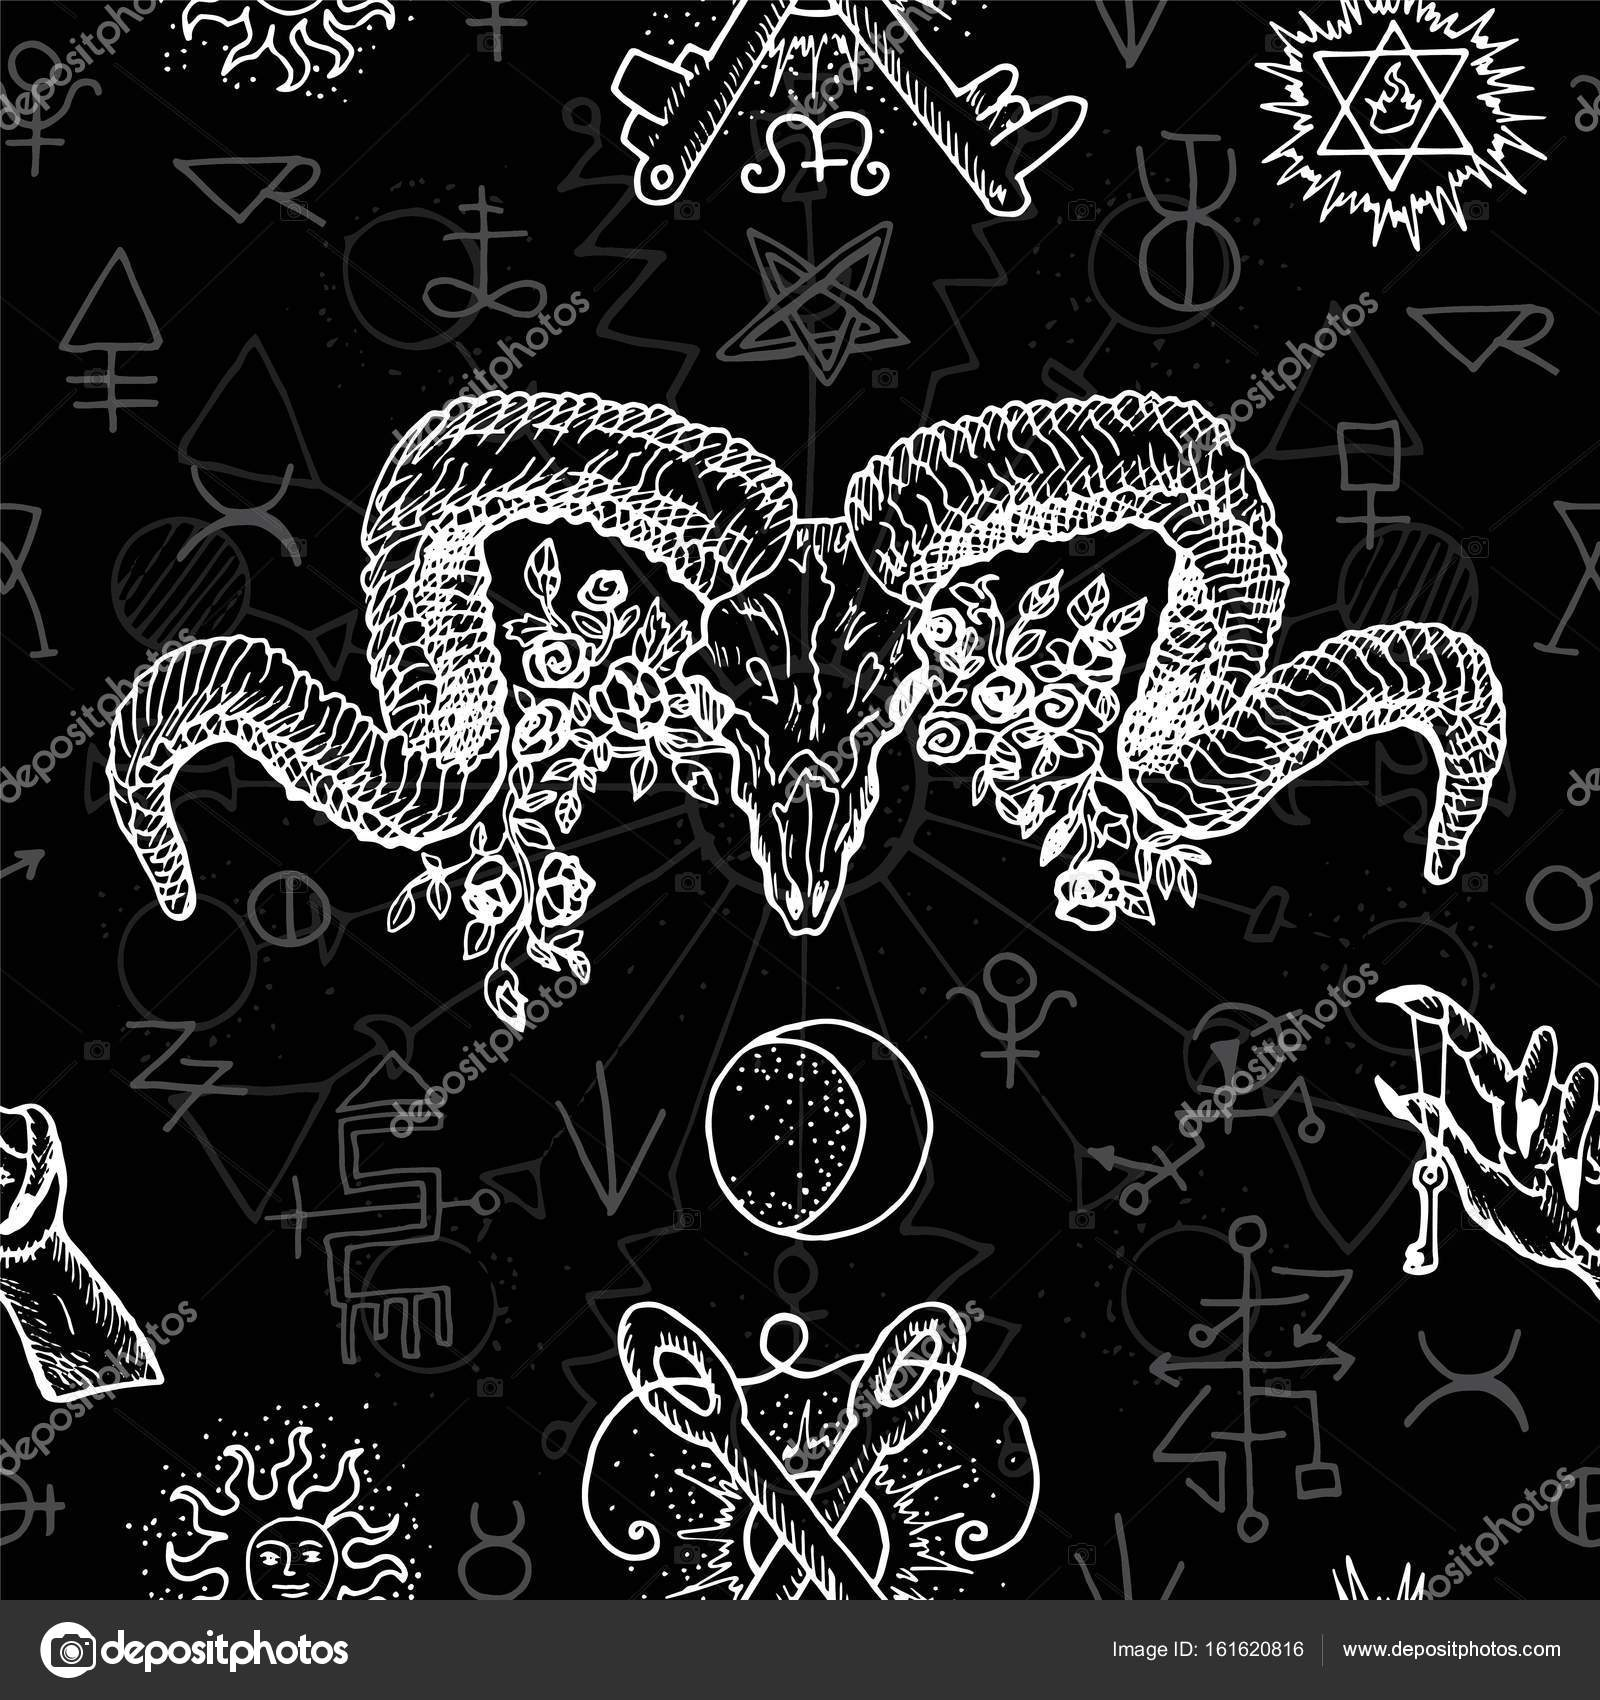 Black And White Seamless Background With Mystic Alchemical And